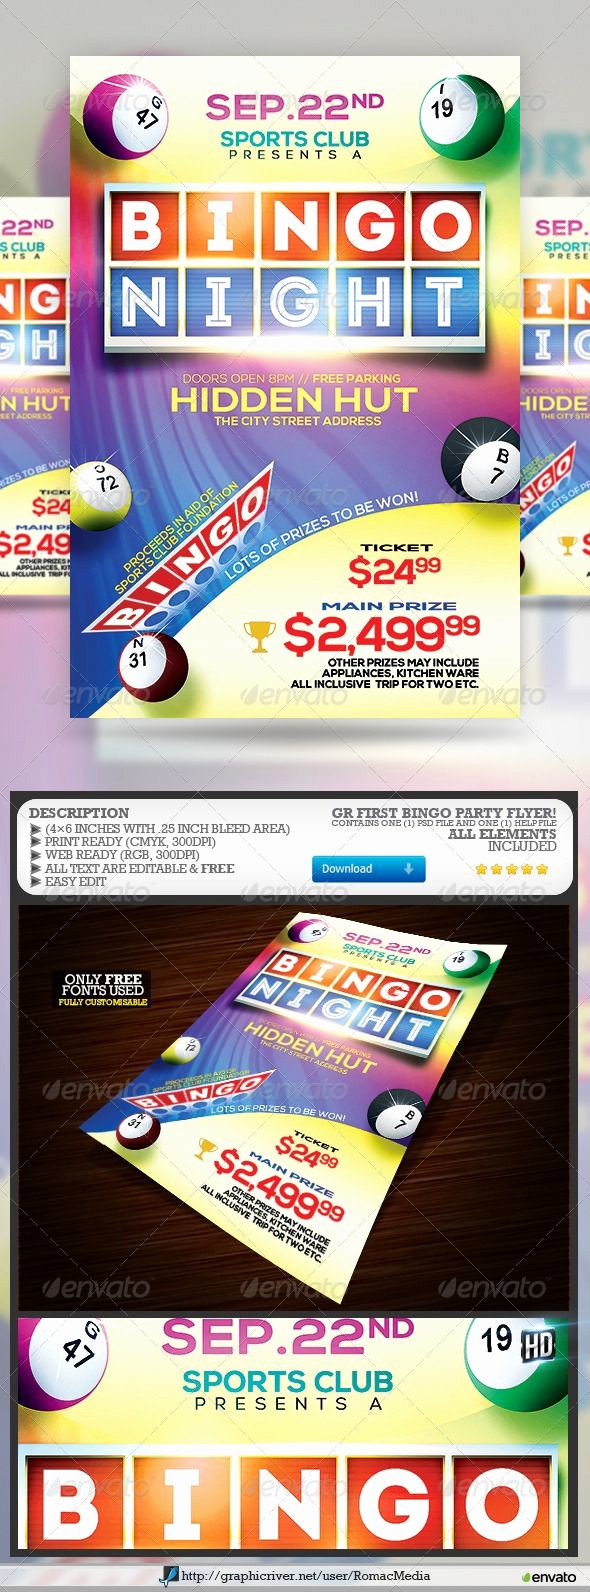 Board Game Night Flyer Template Elegant 17 Best Images About Bingo On Pinterest